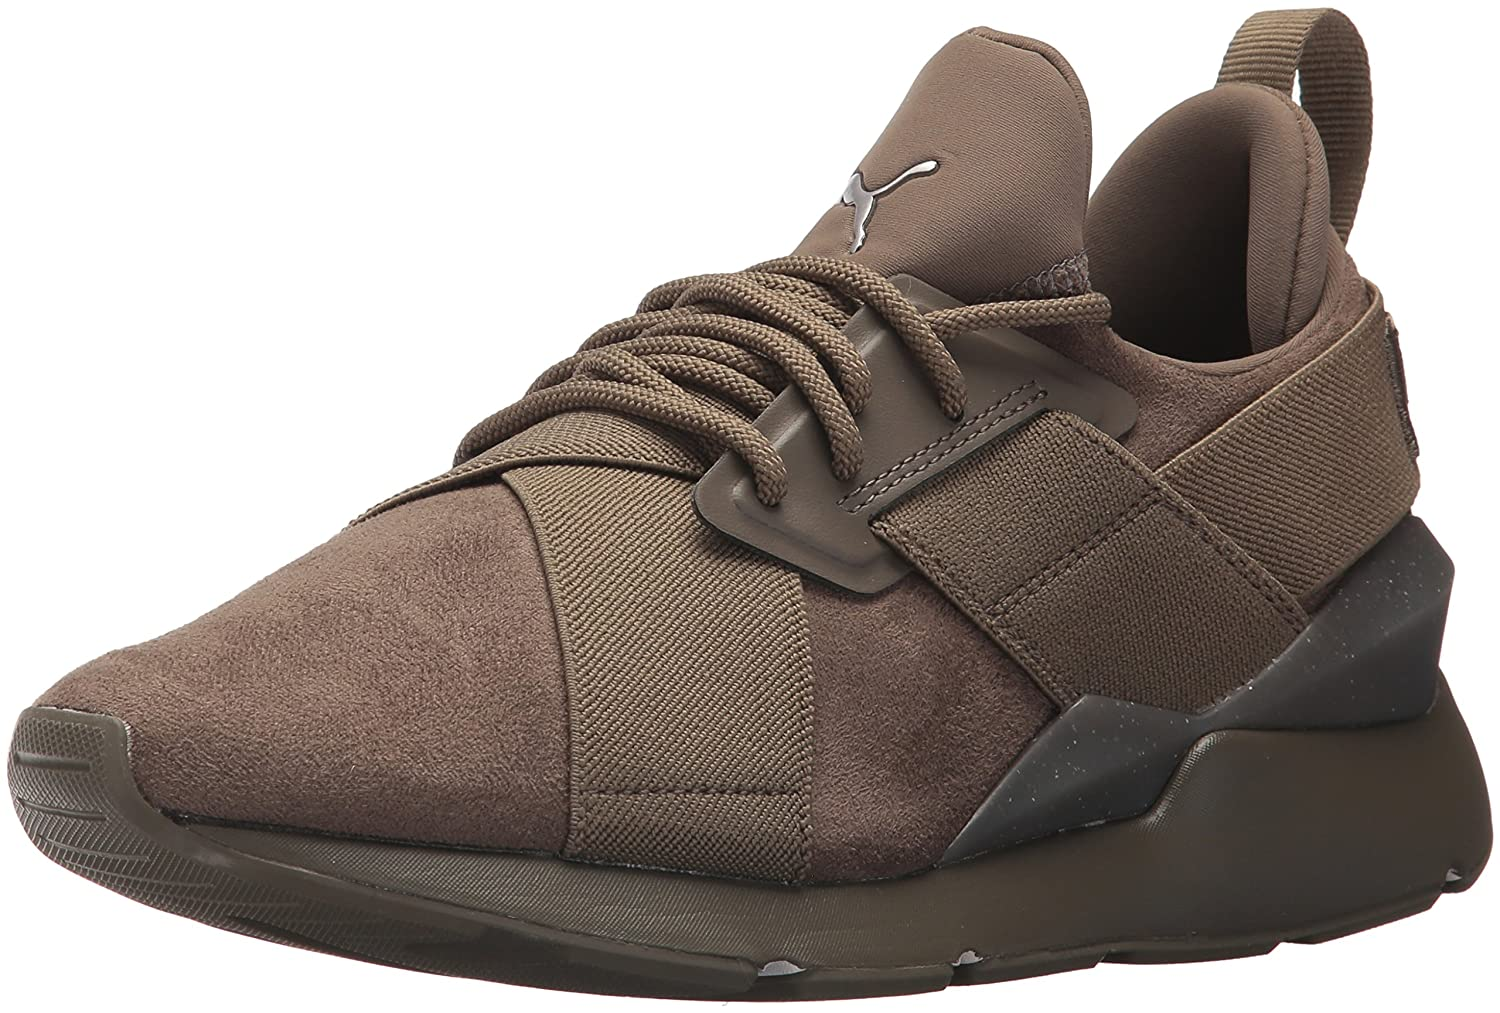 PUMA Women's Muse Elevated Wn Sneaker B071GMBKCR 5.5 B(M) US|Bungee Cord-bungee Cord